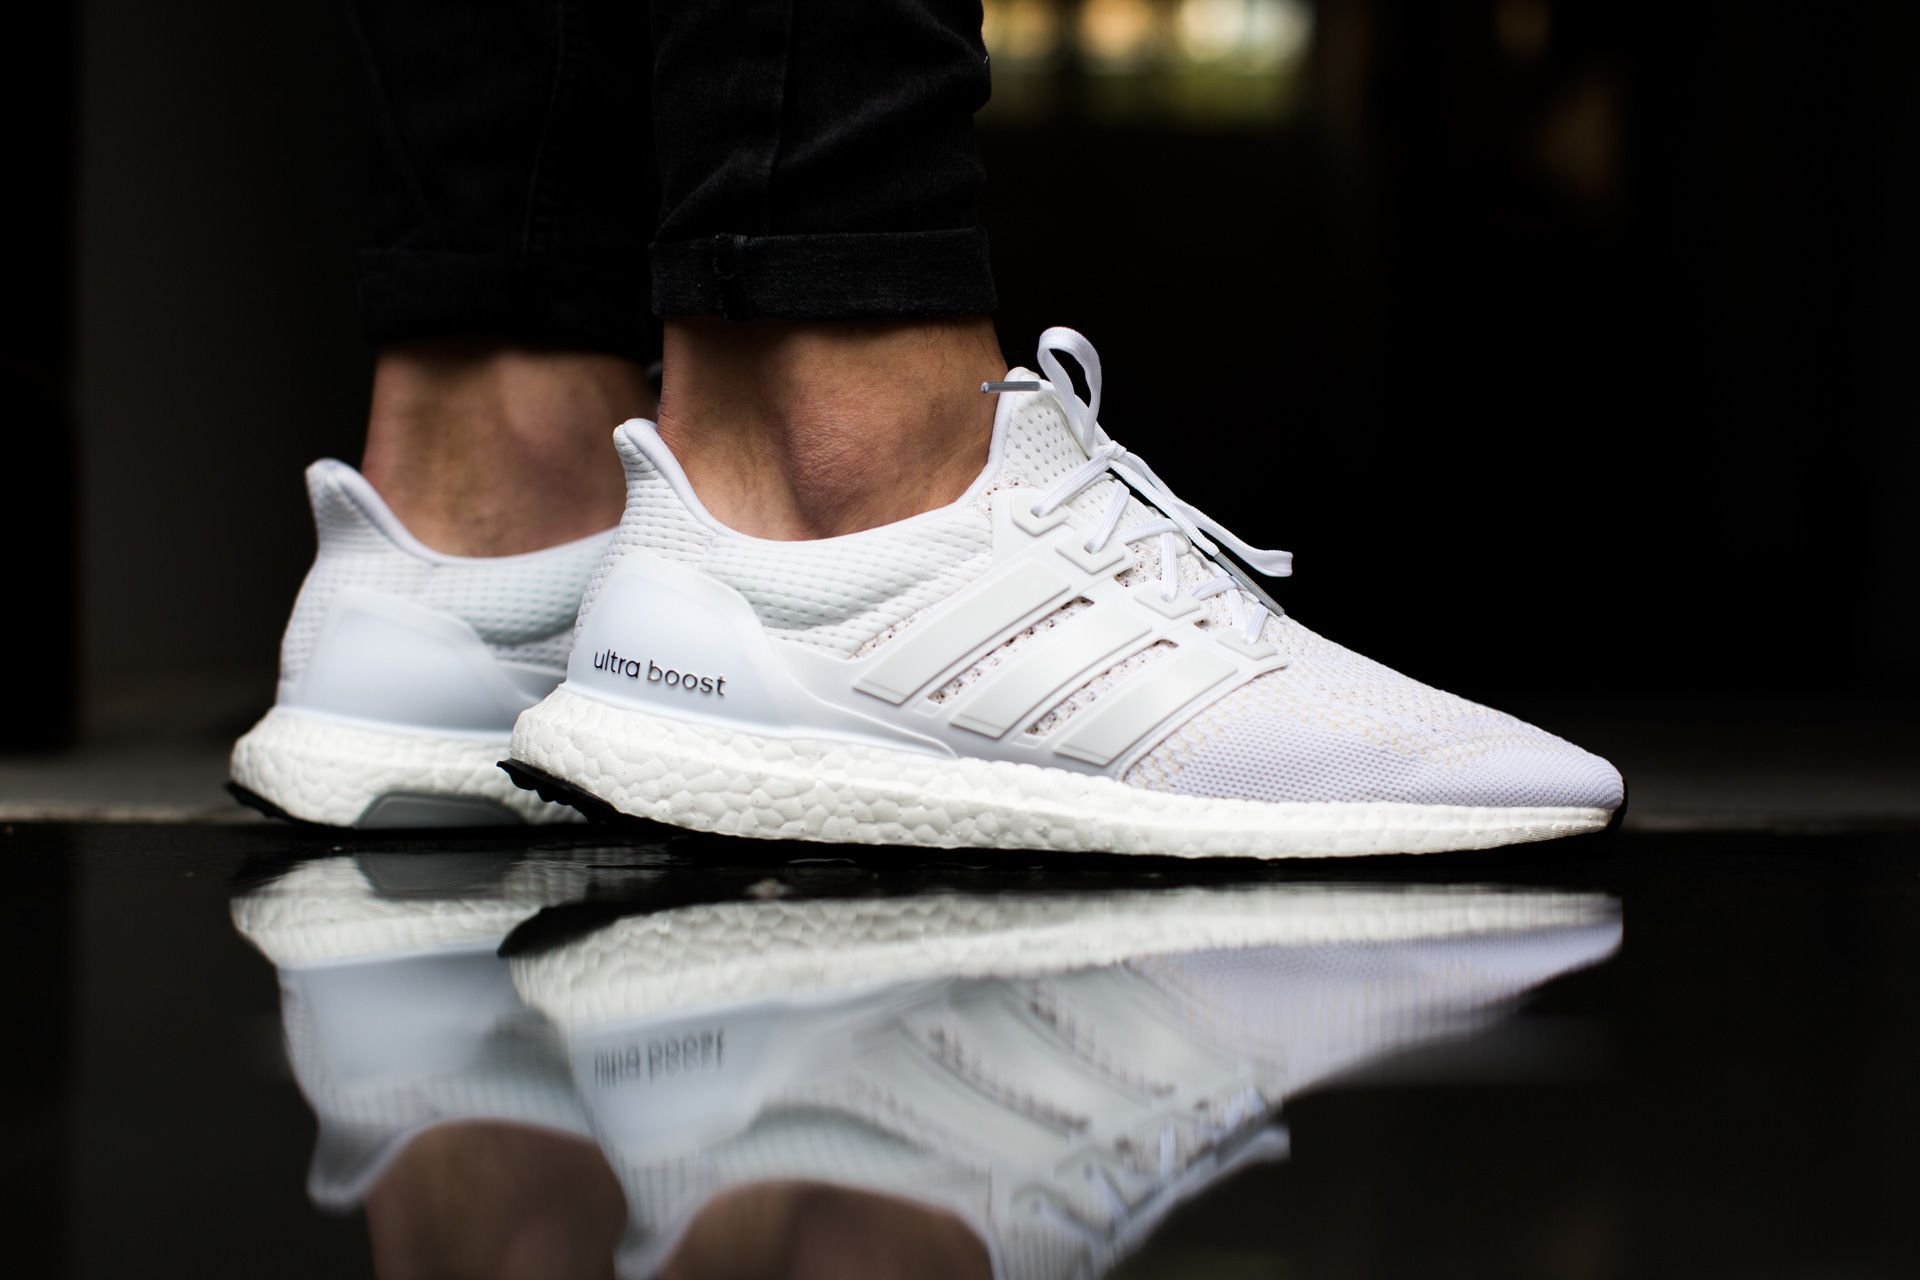 b5915af67 ... promo code for adidas ultra boost tint footwear adidas ultra boost all  white everything sneaker hype